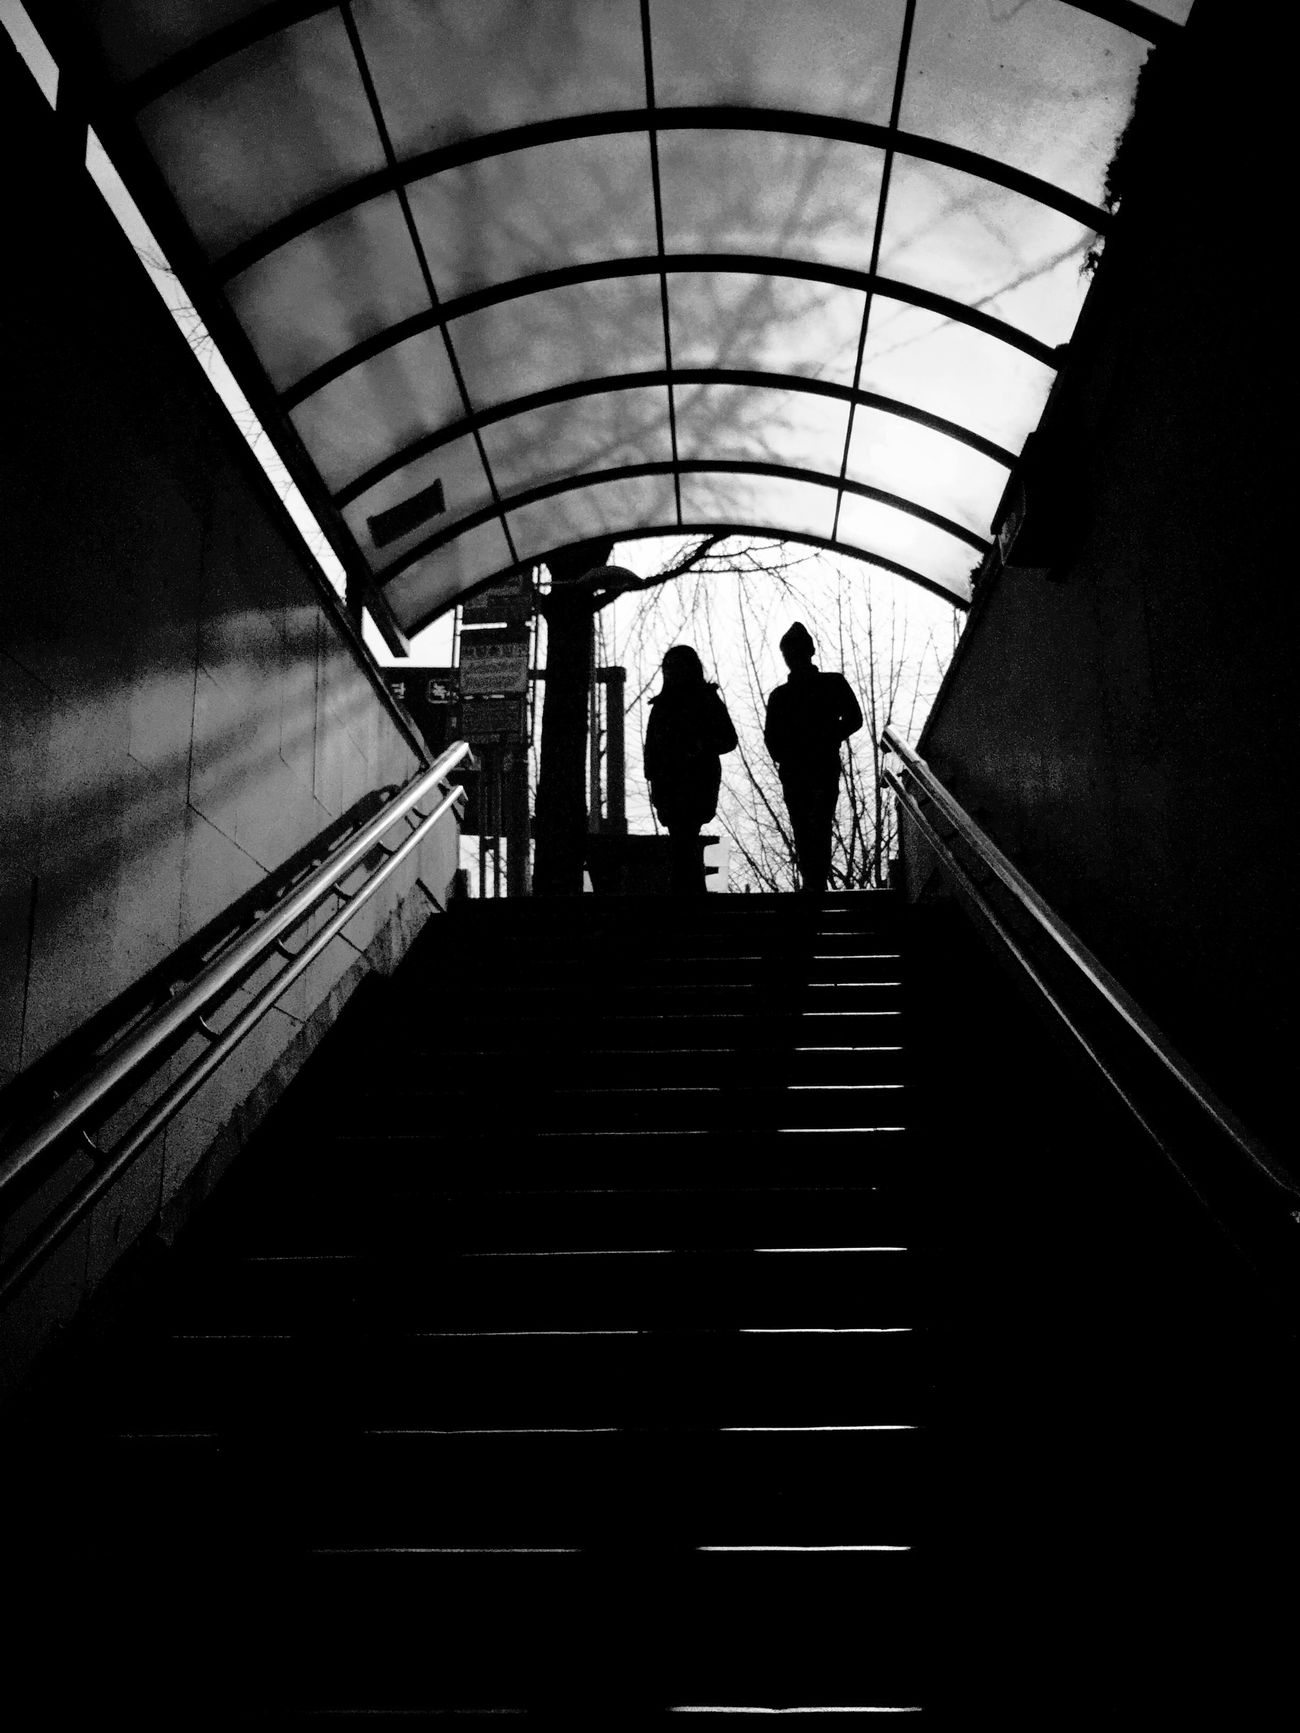 Korea South Korea Blackandwhite Streetphotography Iteawon B&w Street Photography